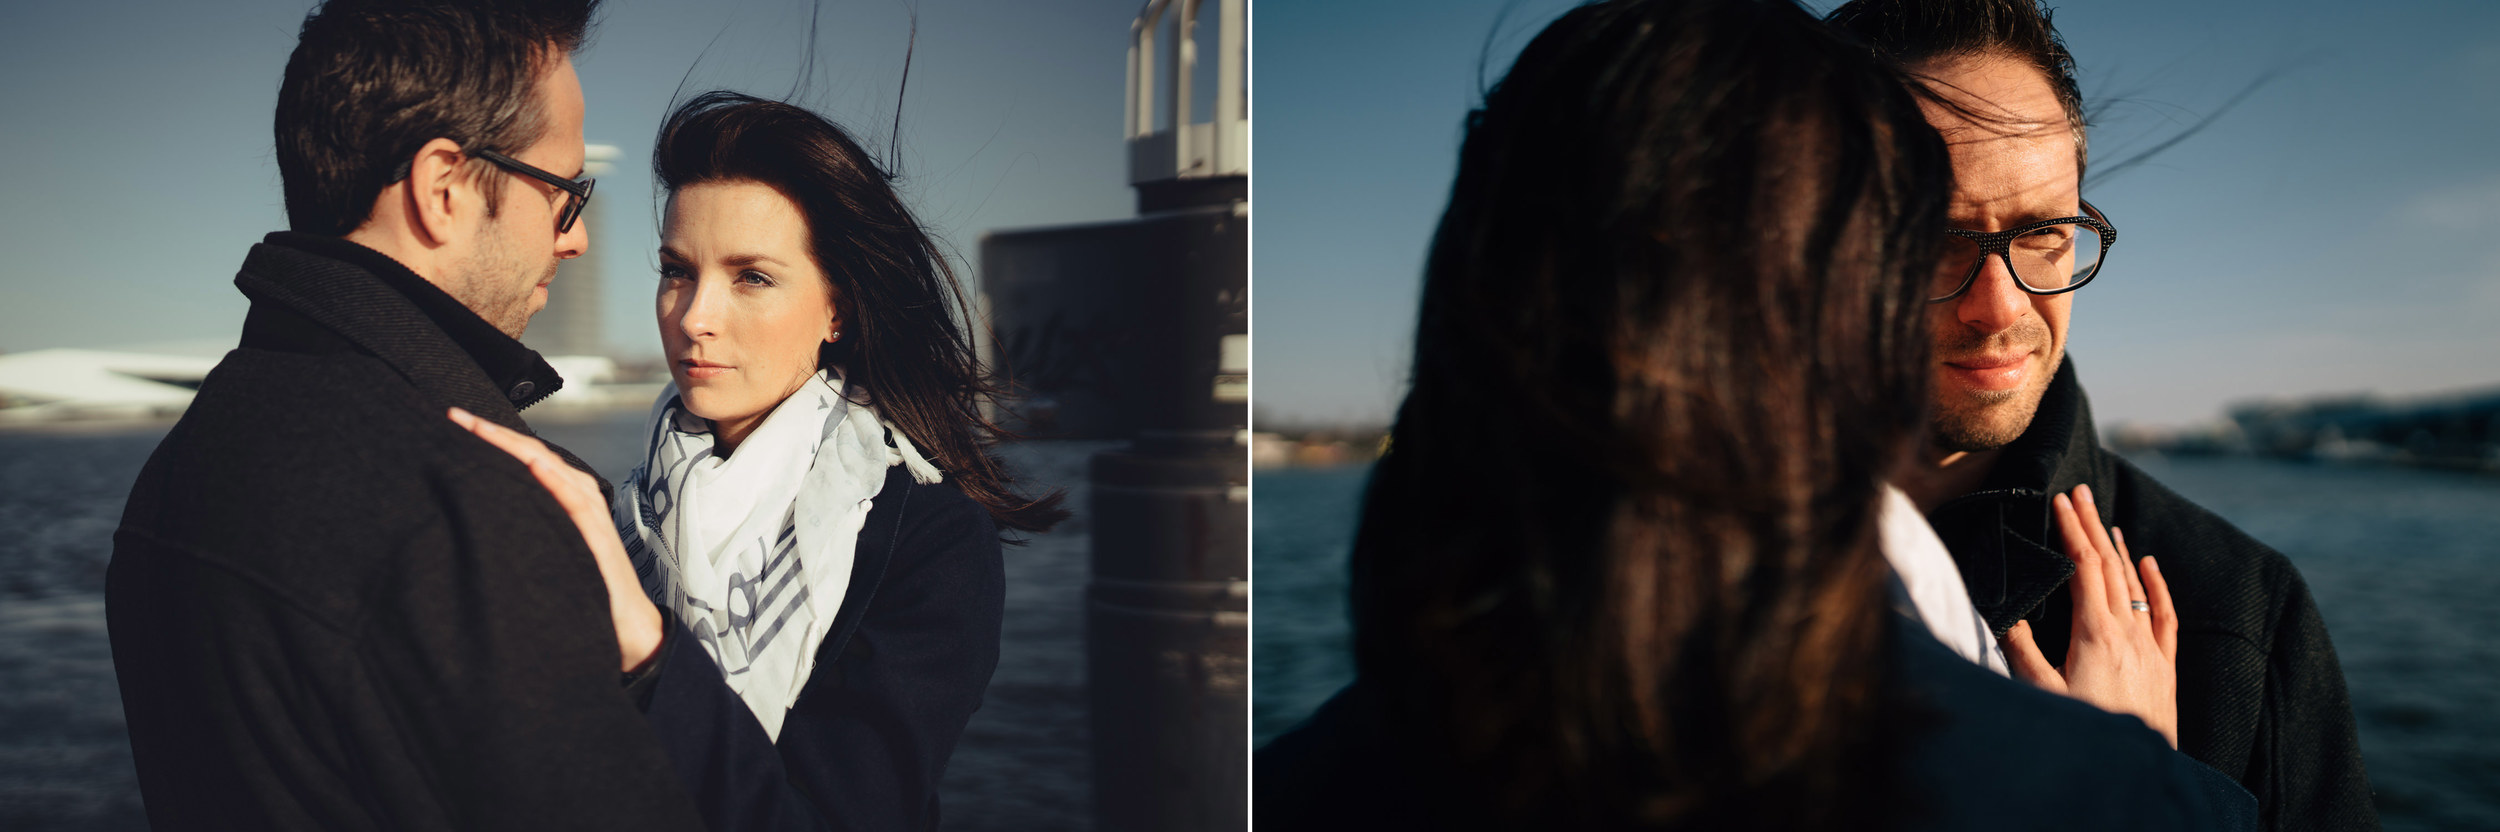 portraits from an amsterdam loveshoot